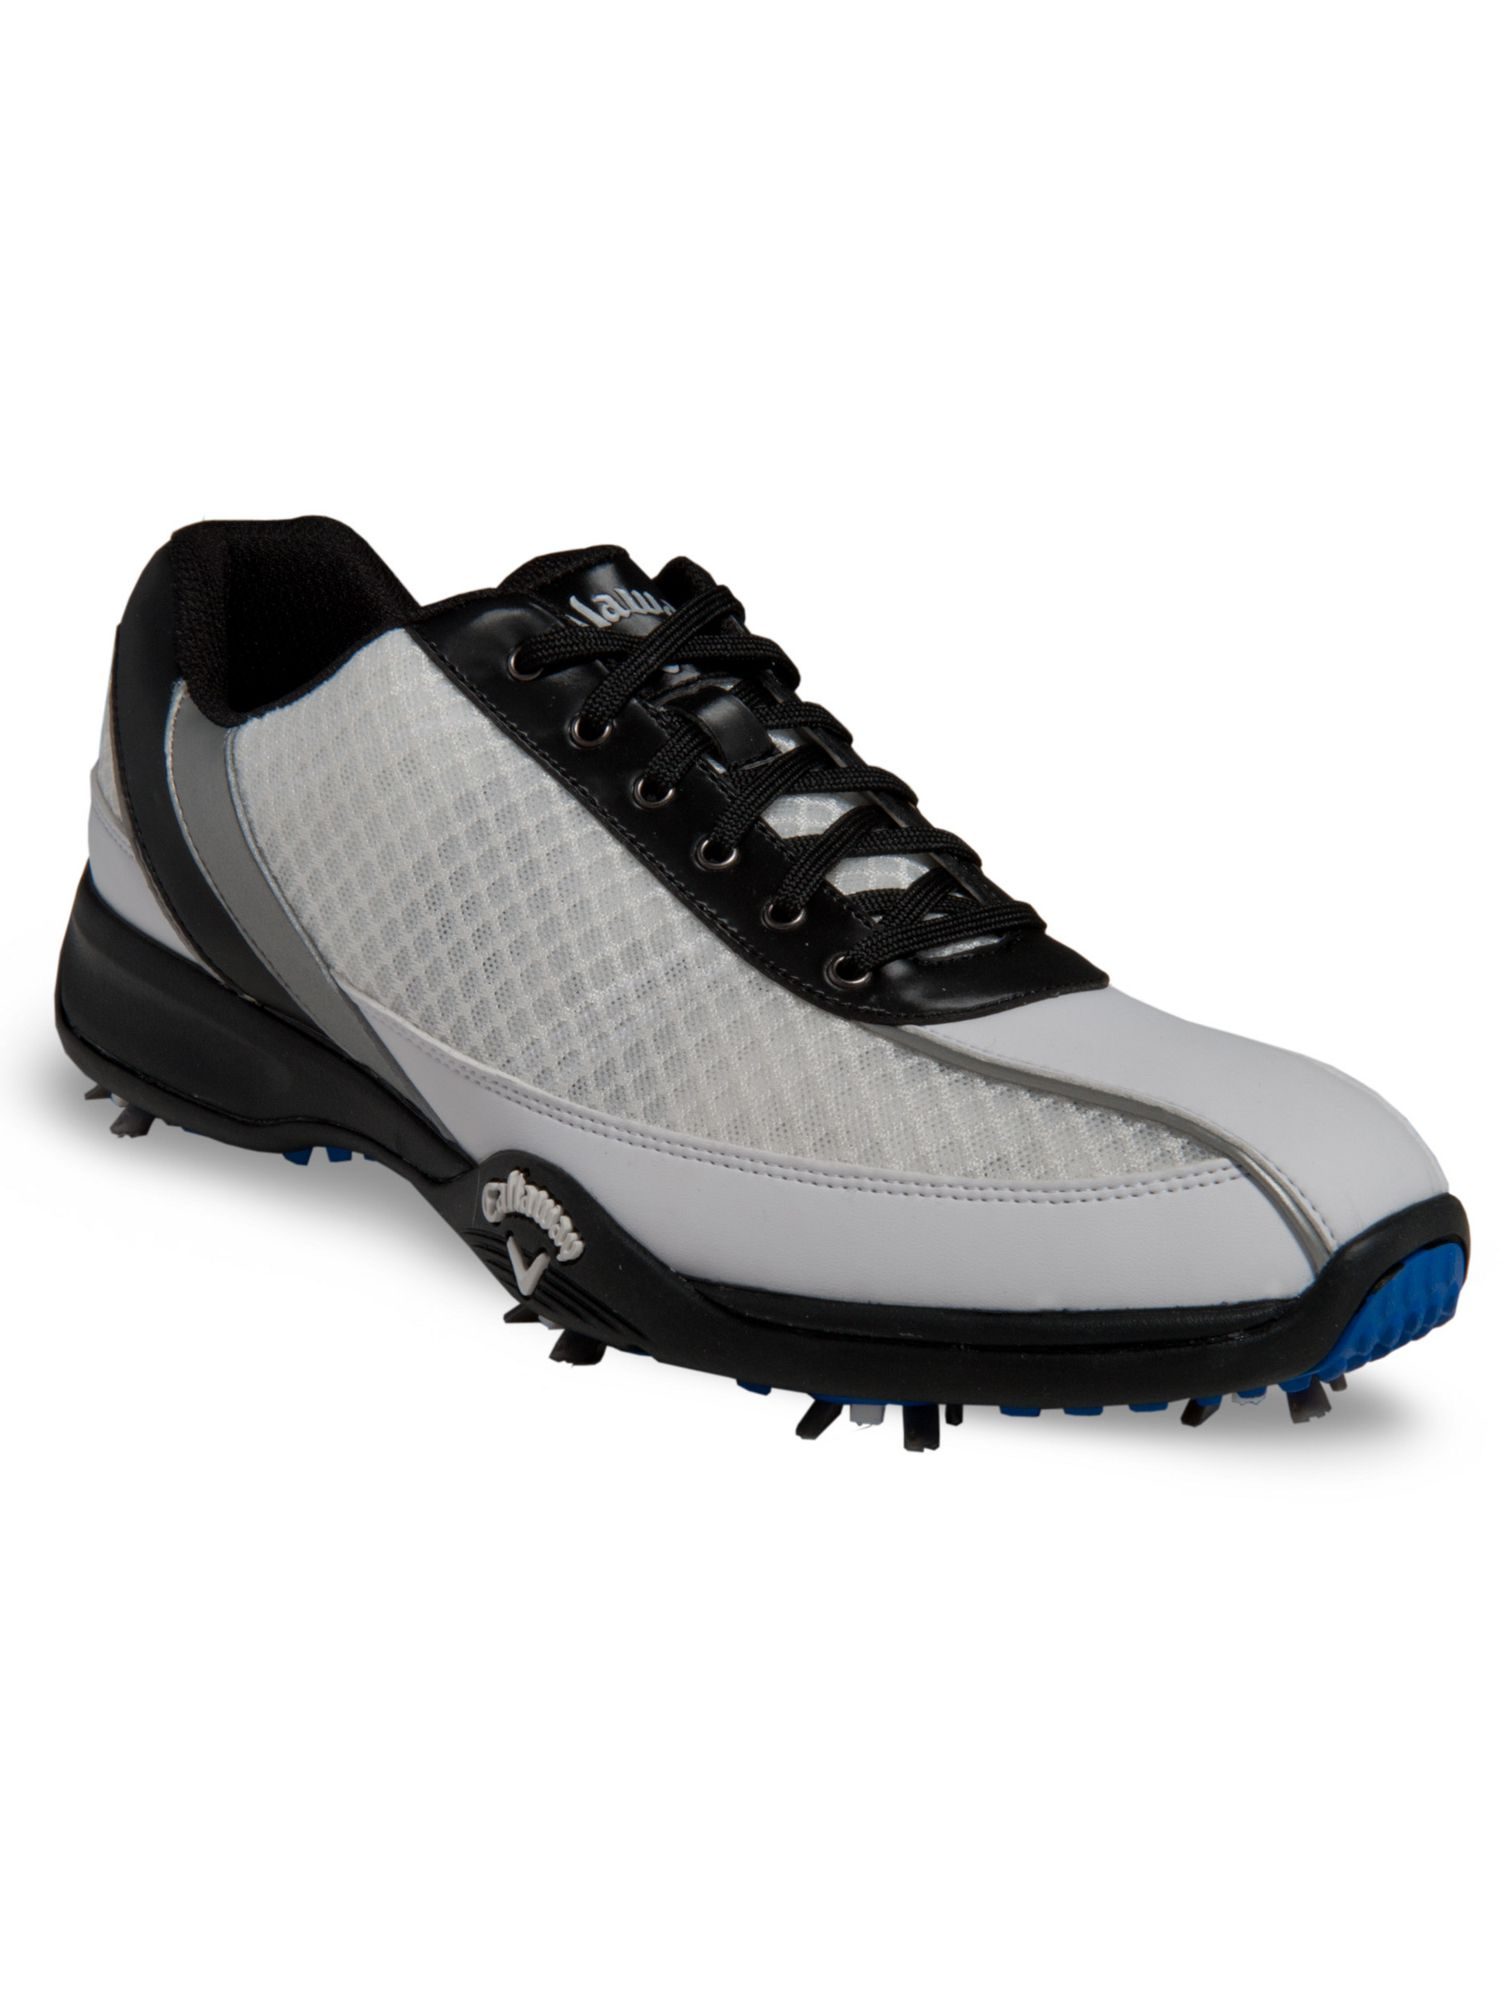 Chev aero golf shoes